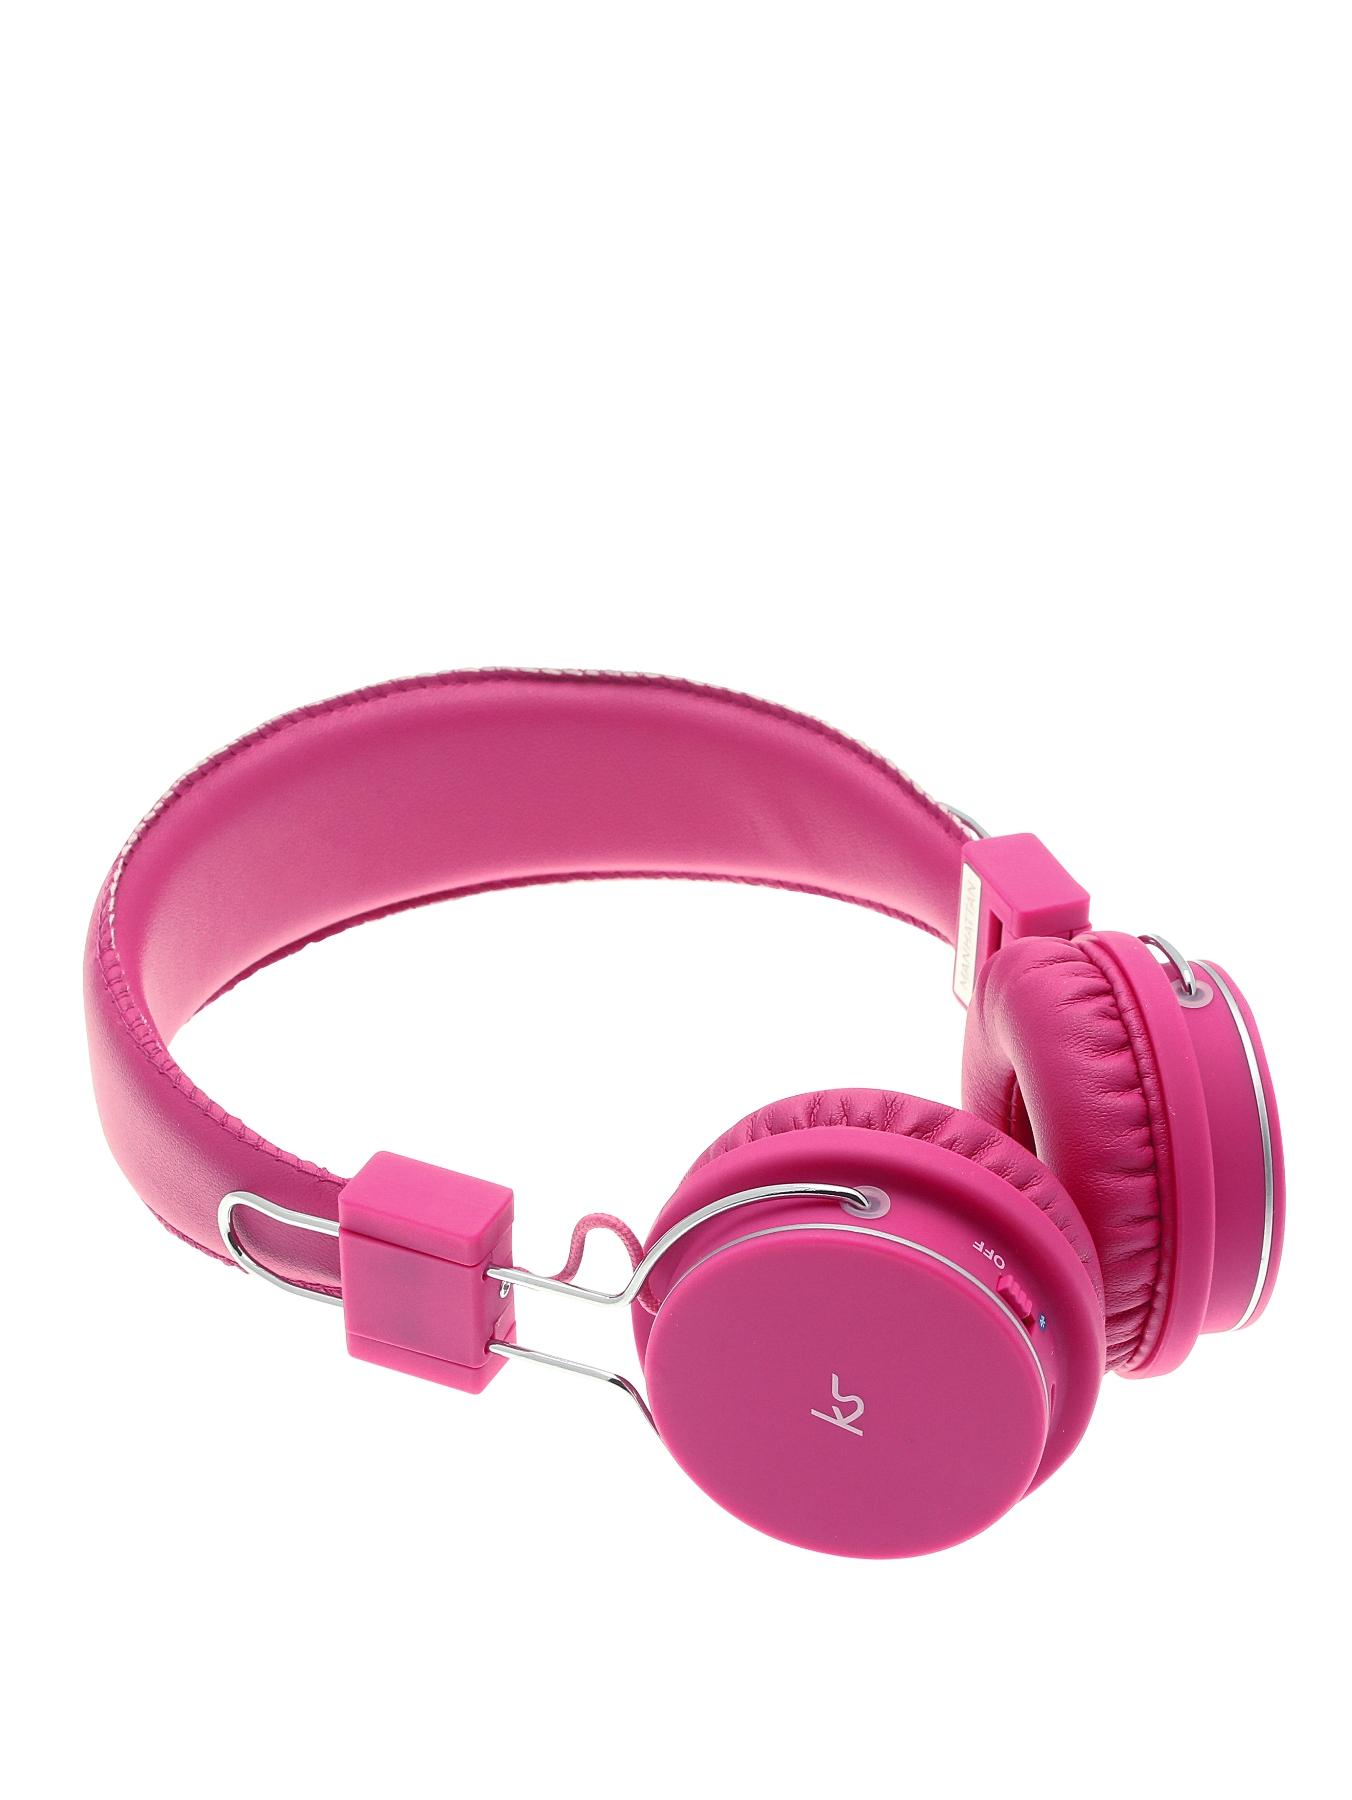 Manhattan Bluetooth Wireless Over Ear Headphones With Mic - Pink